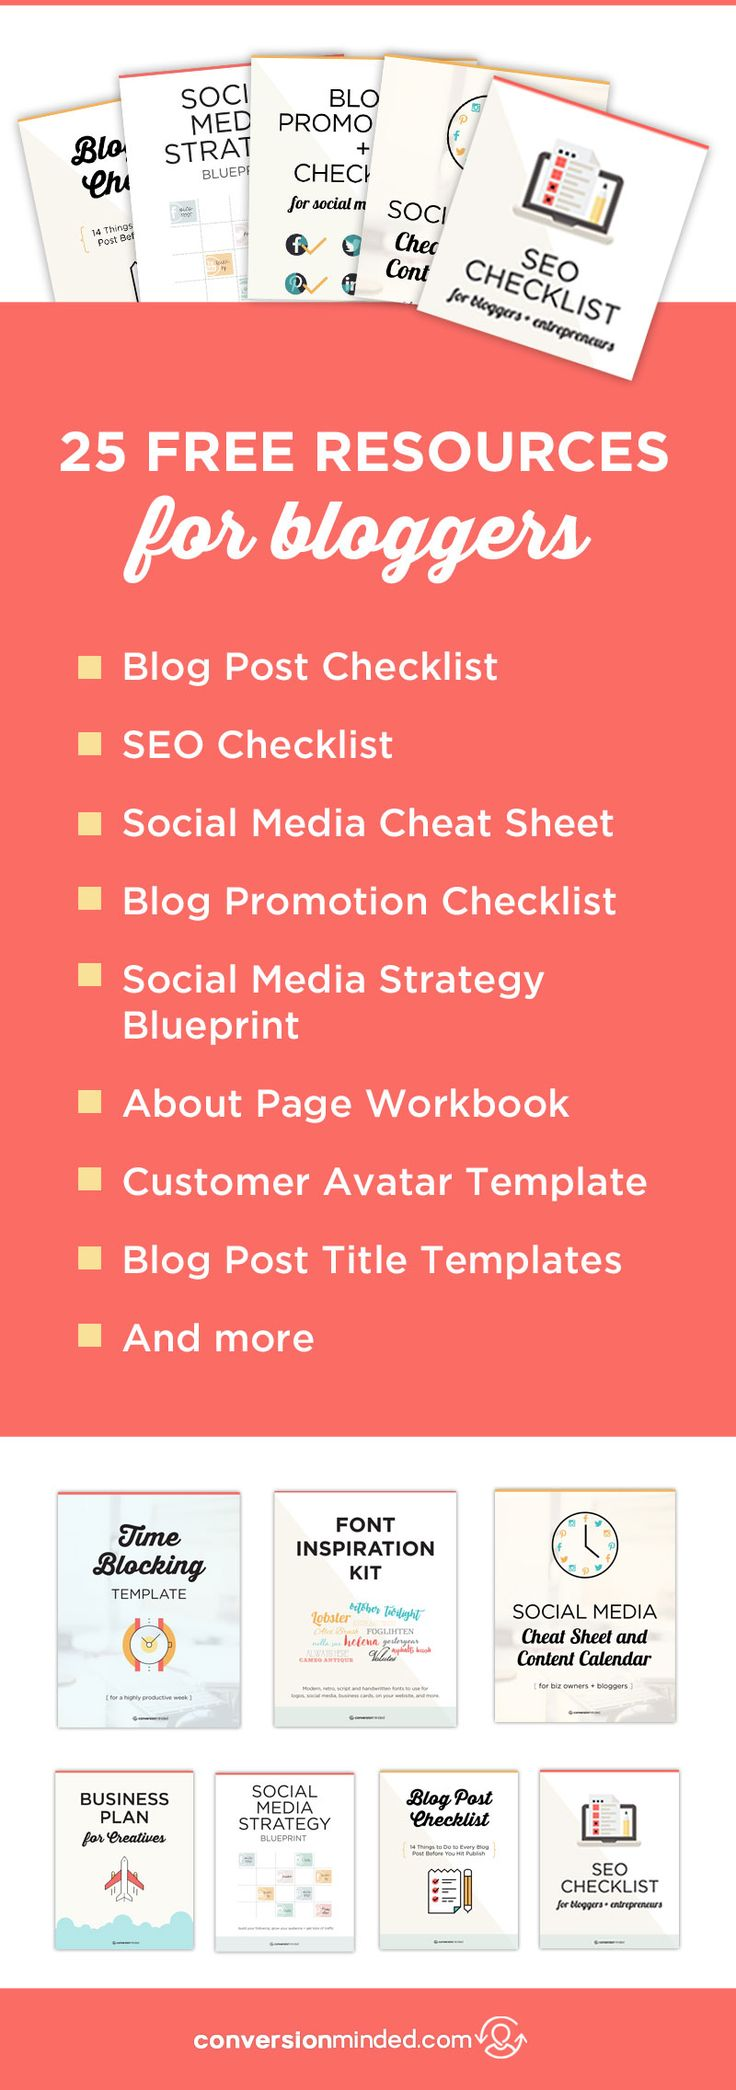 25 Free Blogging Resources & Tools   Worksheets, templates, checklists, and planners to help you amplify your growth and earn a full-time living as quickly as possible. blogging resources and tips #blogging #blogger